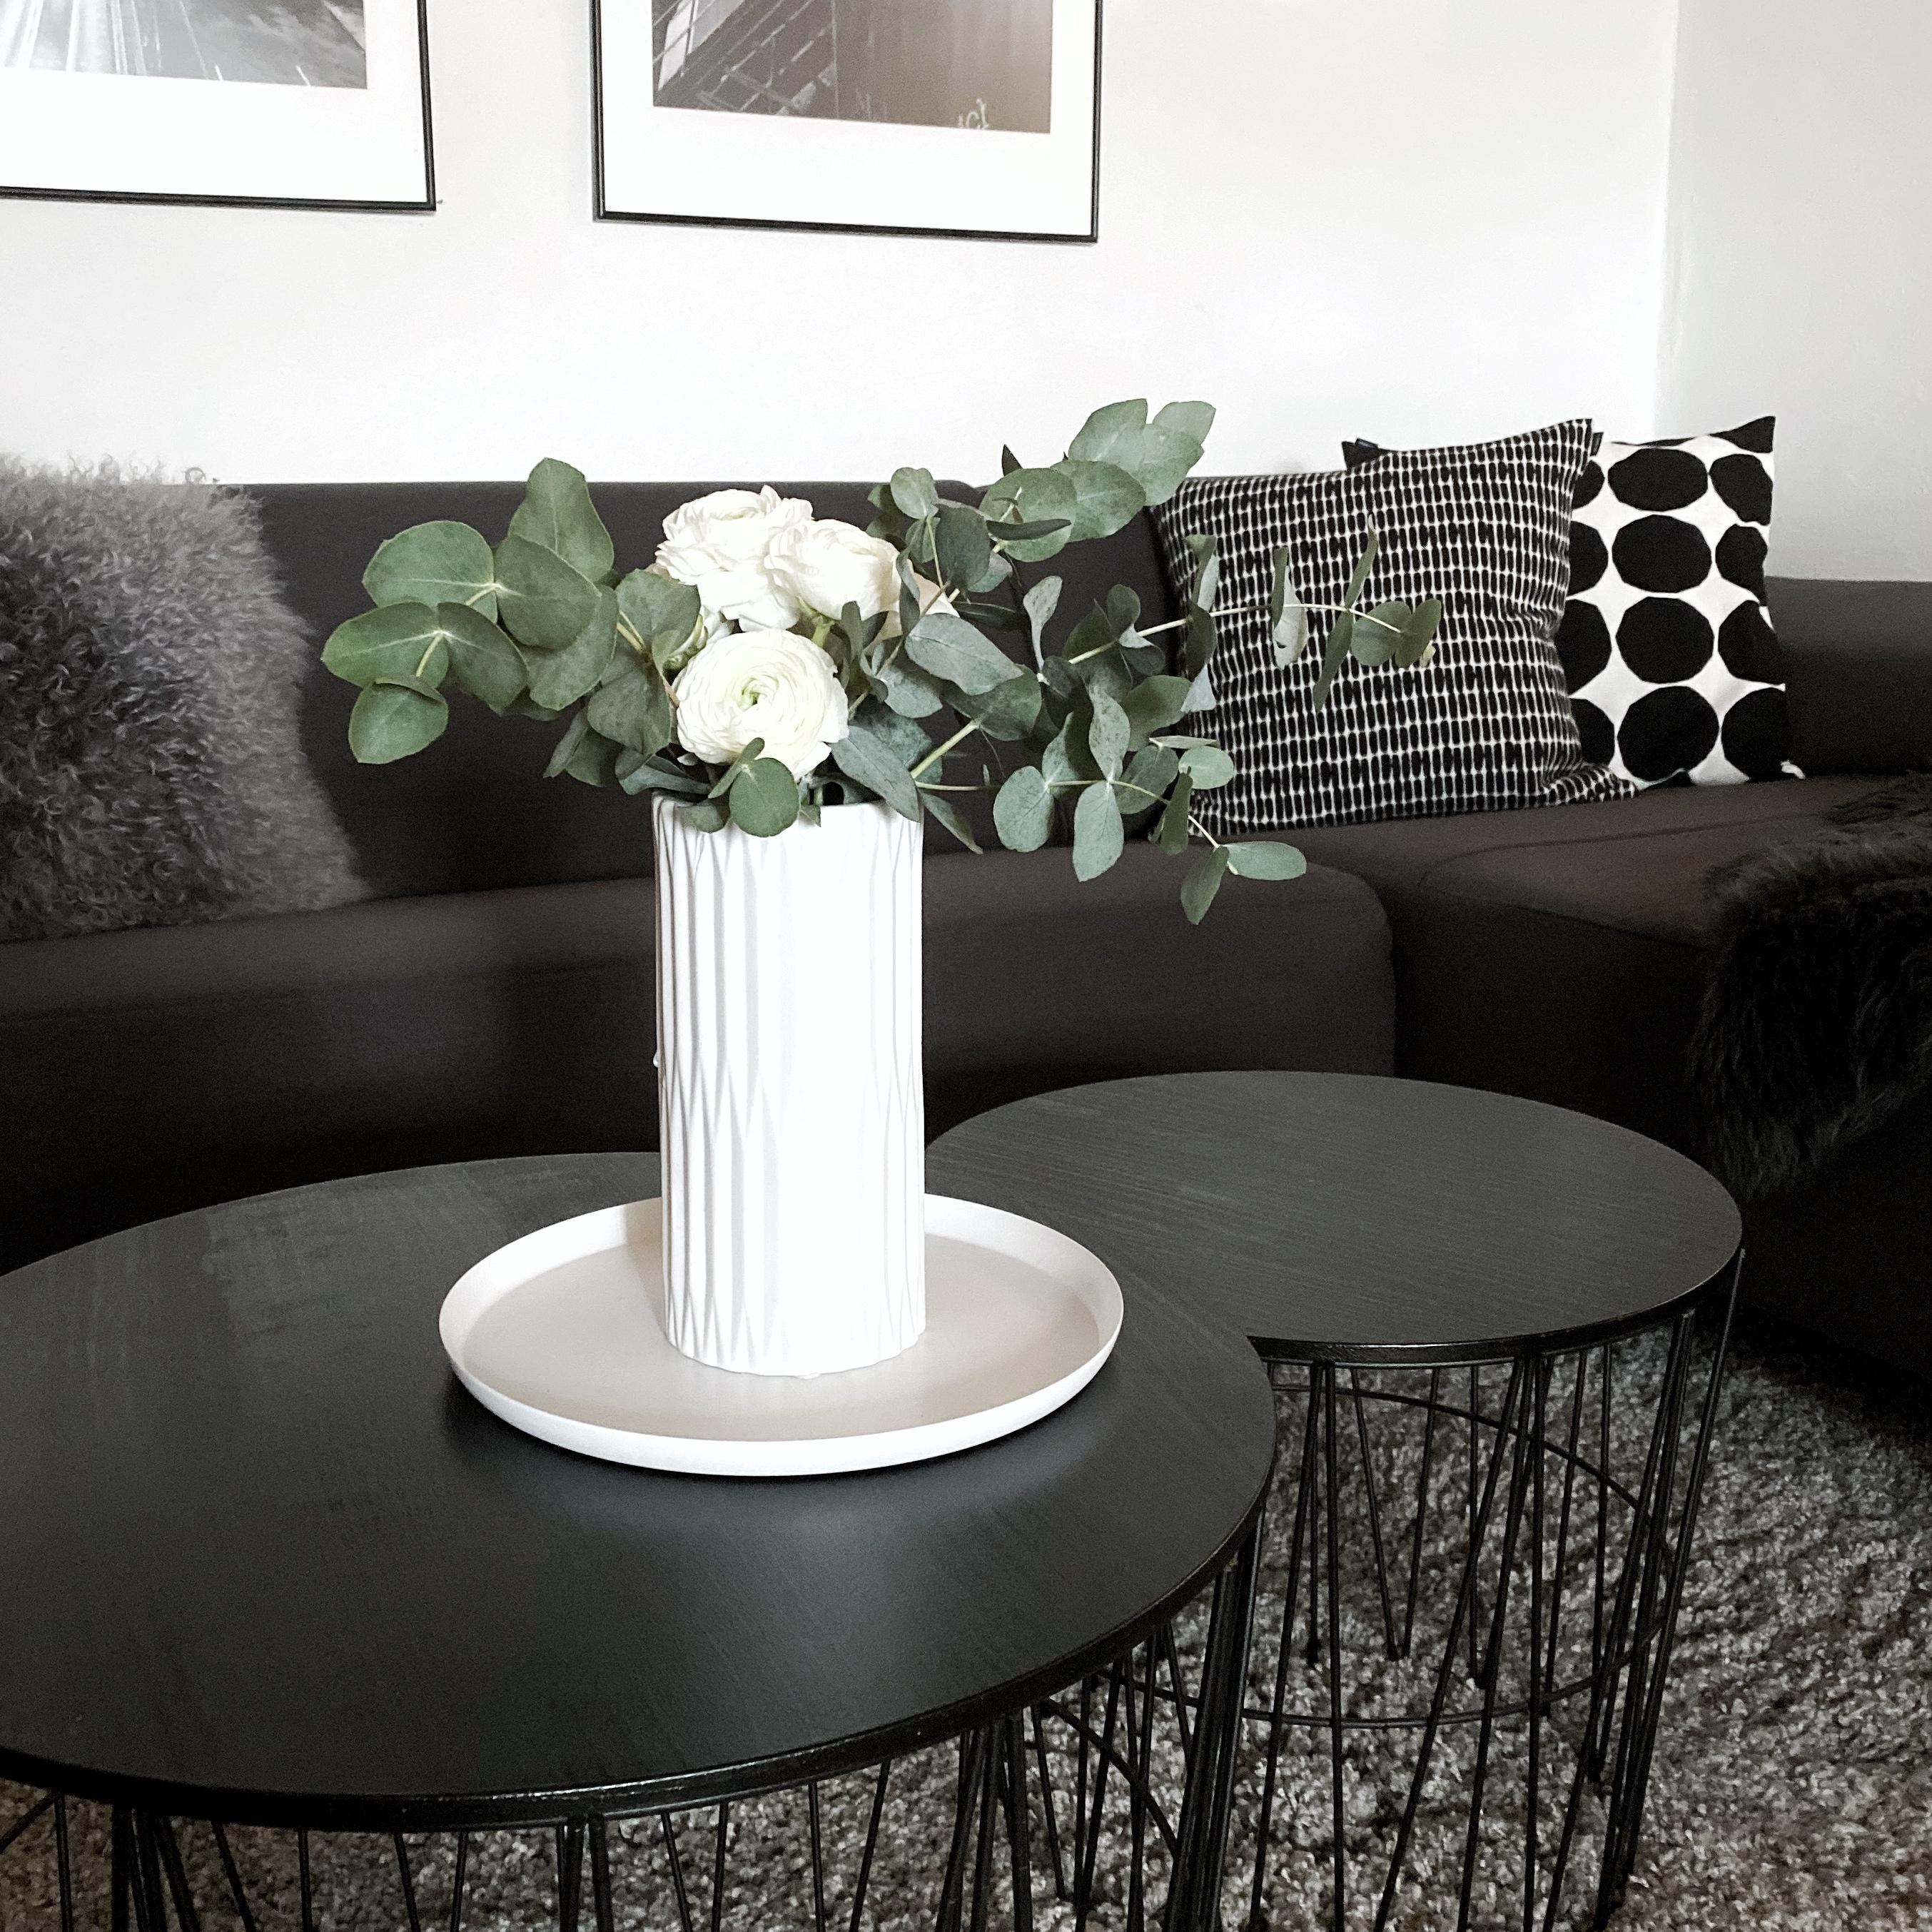 Happy Weekend! Ab aufs Sofa! 🖤 #freshflowers #couch #sofa #kissen #monochrom #skandinavisch #scandi #vase #eukalyptus